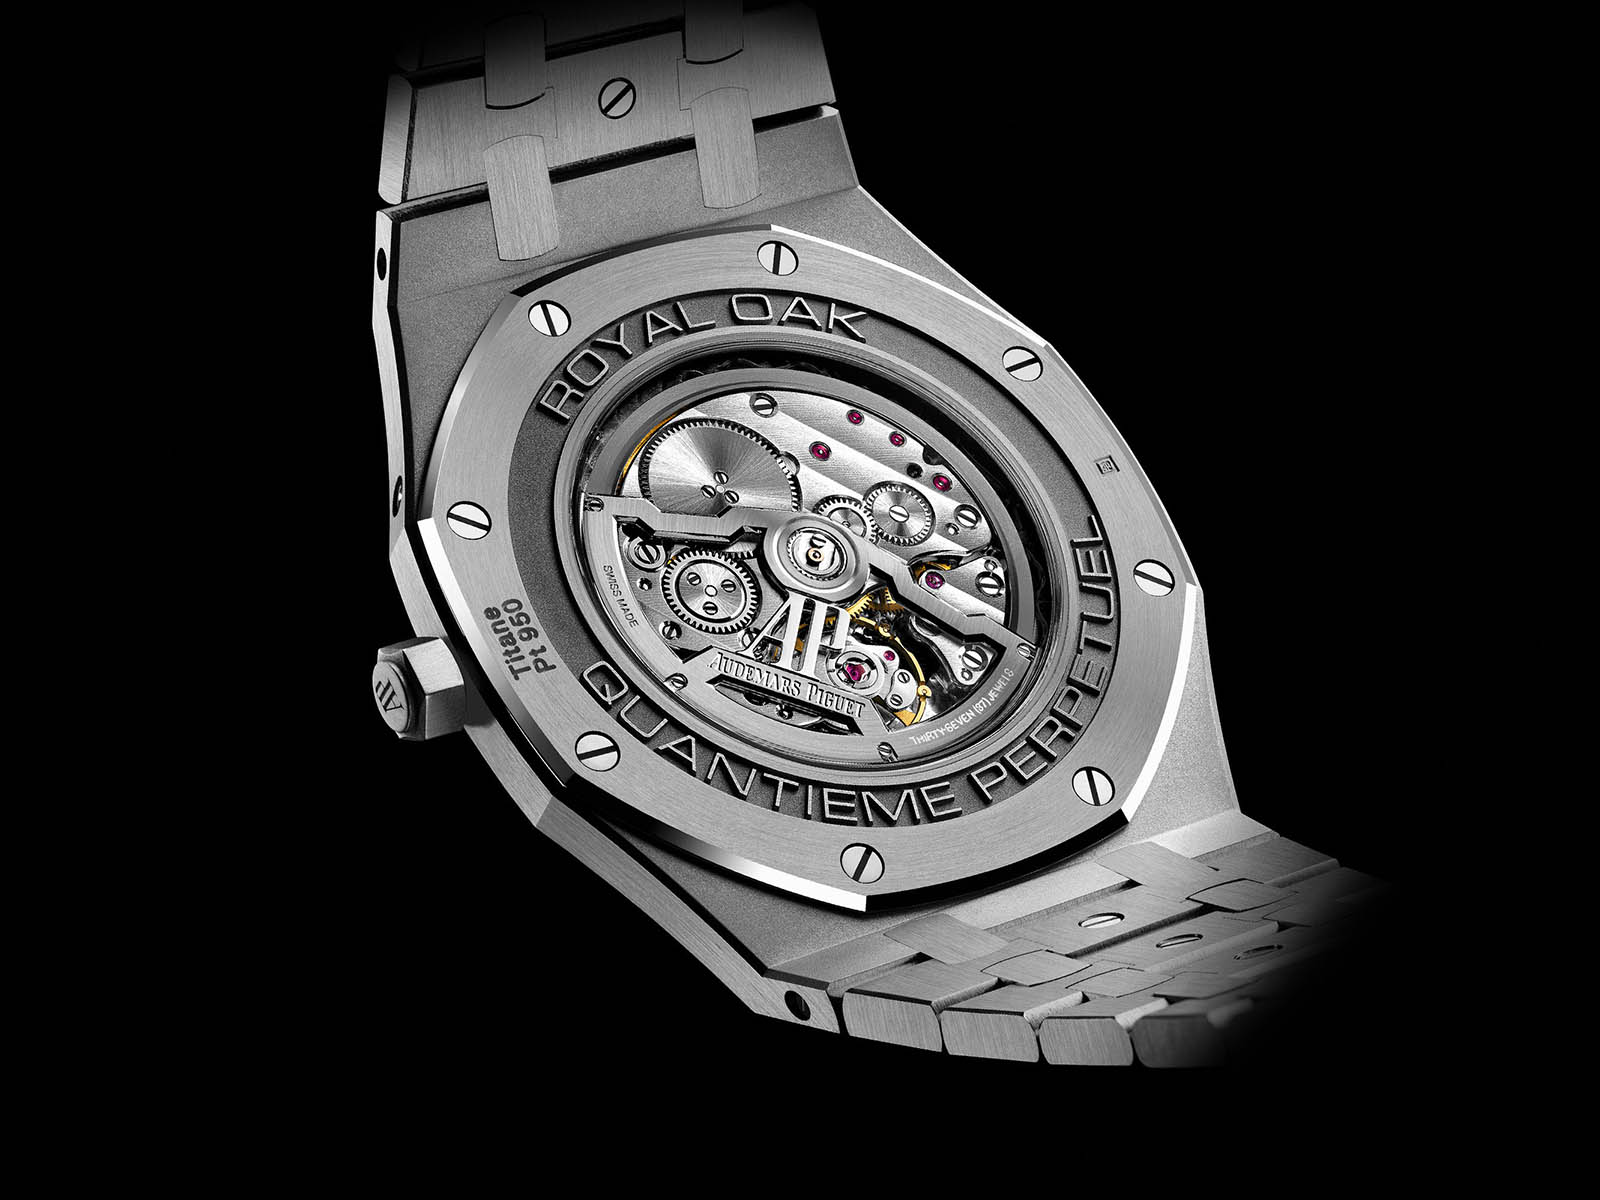 26586ip-oo-1240ip-01-audemars-piguet-royal-oak-perpetual-calendar-ultra-thin-8.jpg